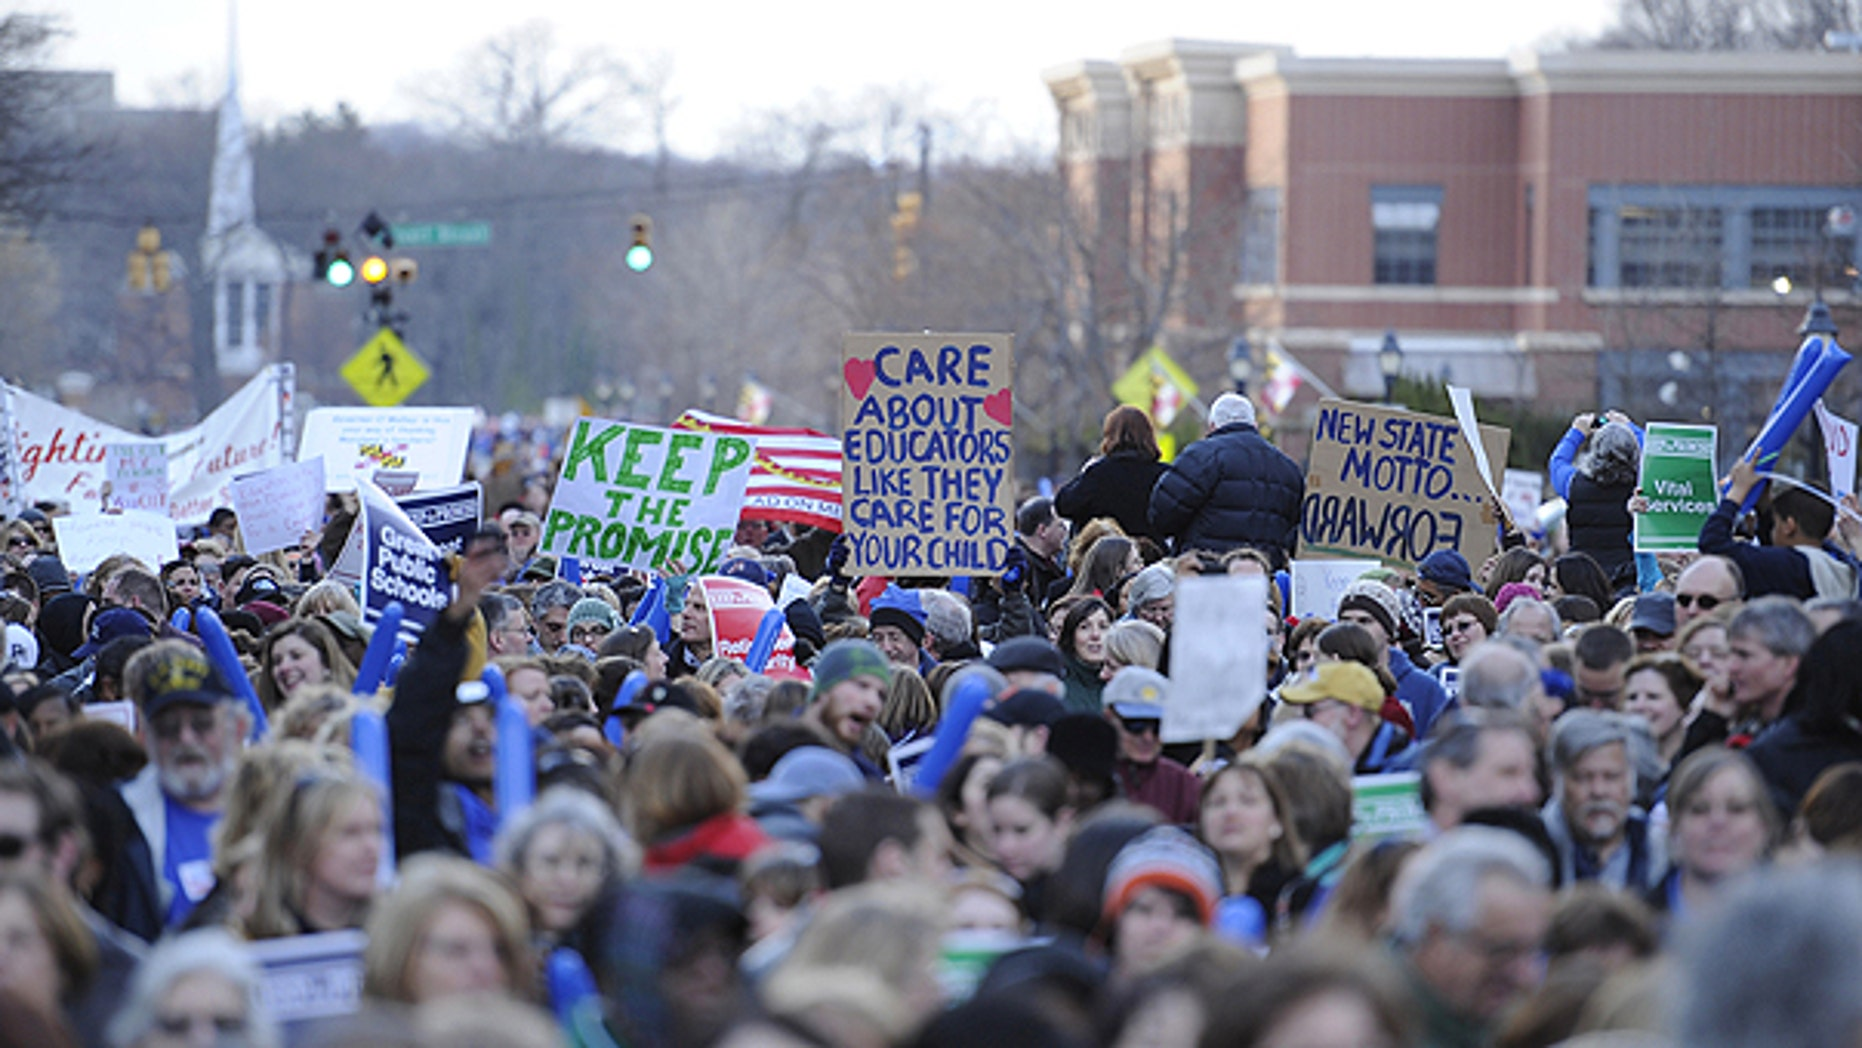 March 14: Protesters hold up signs at the Keep the Promise rally, a rally to protest pension reform in Annapolis, Md.